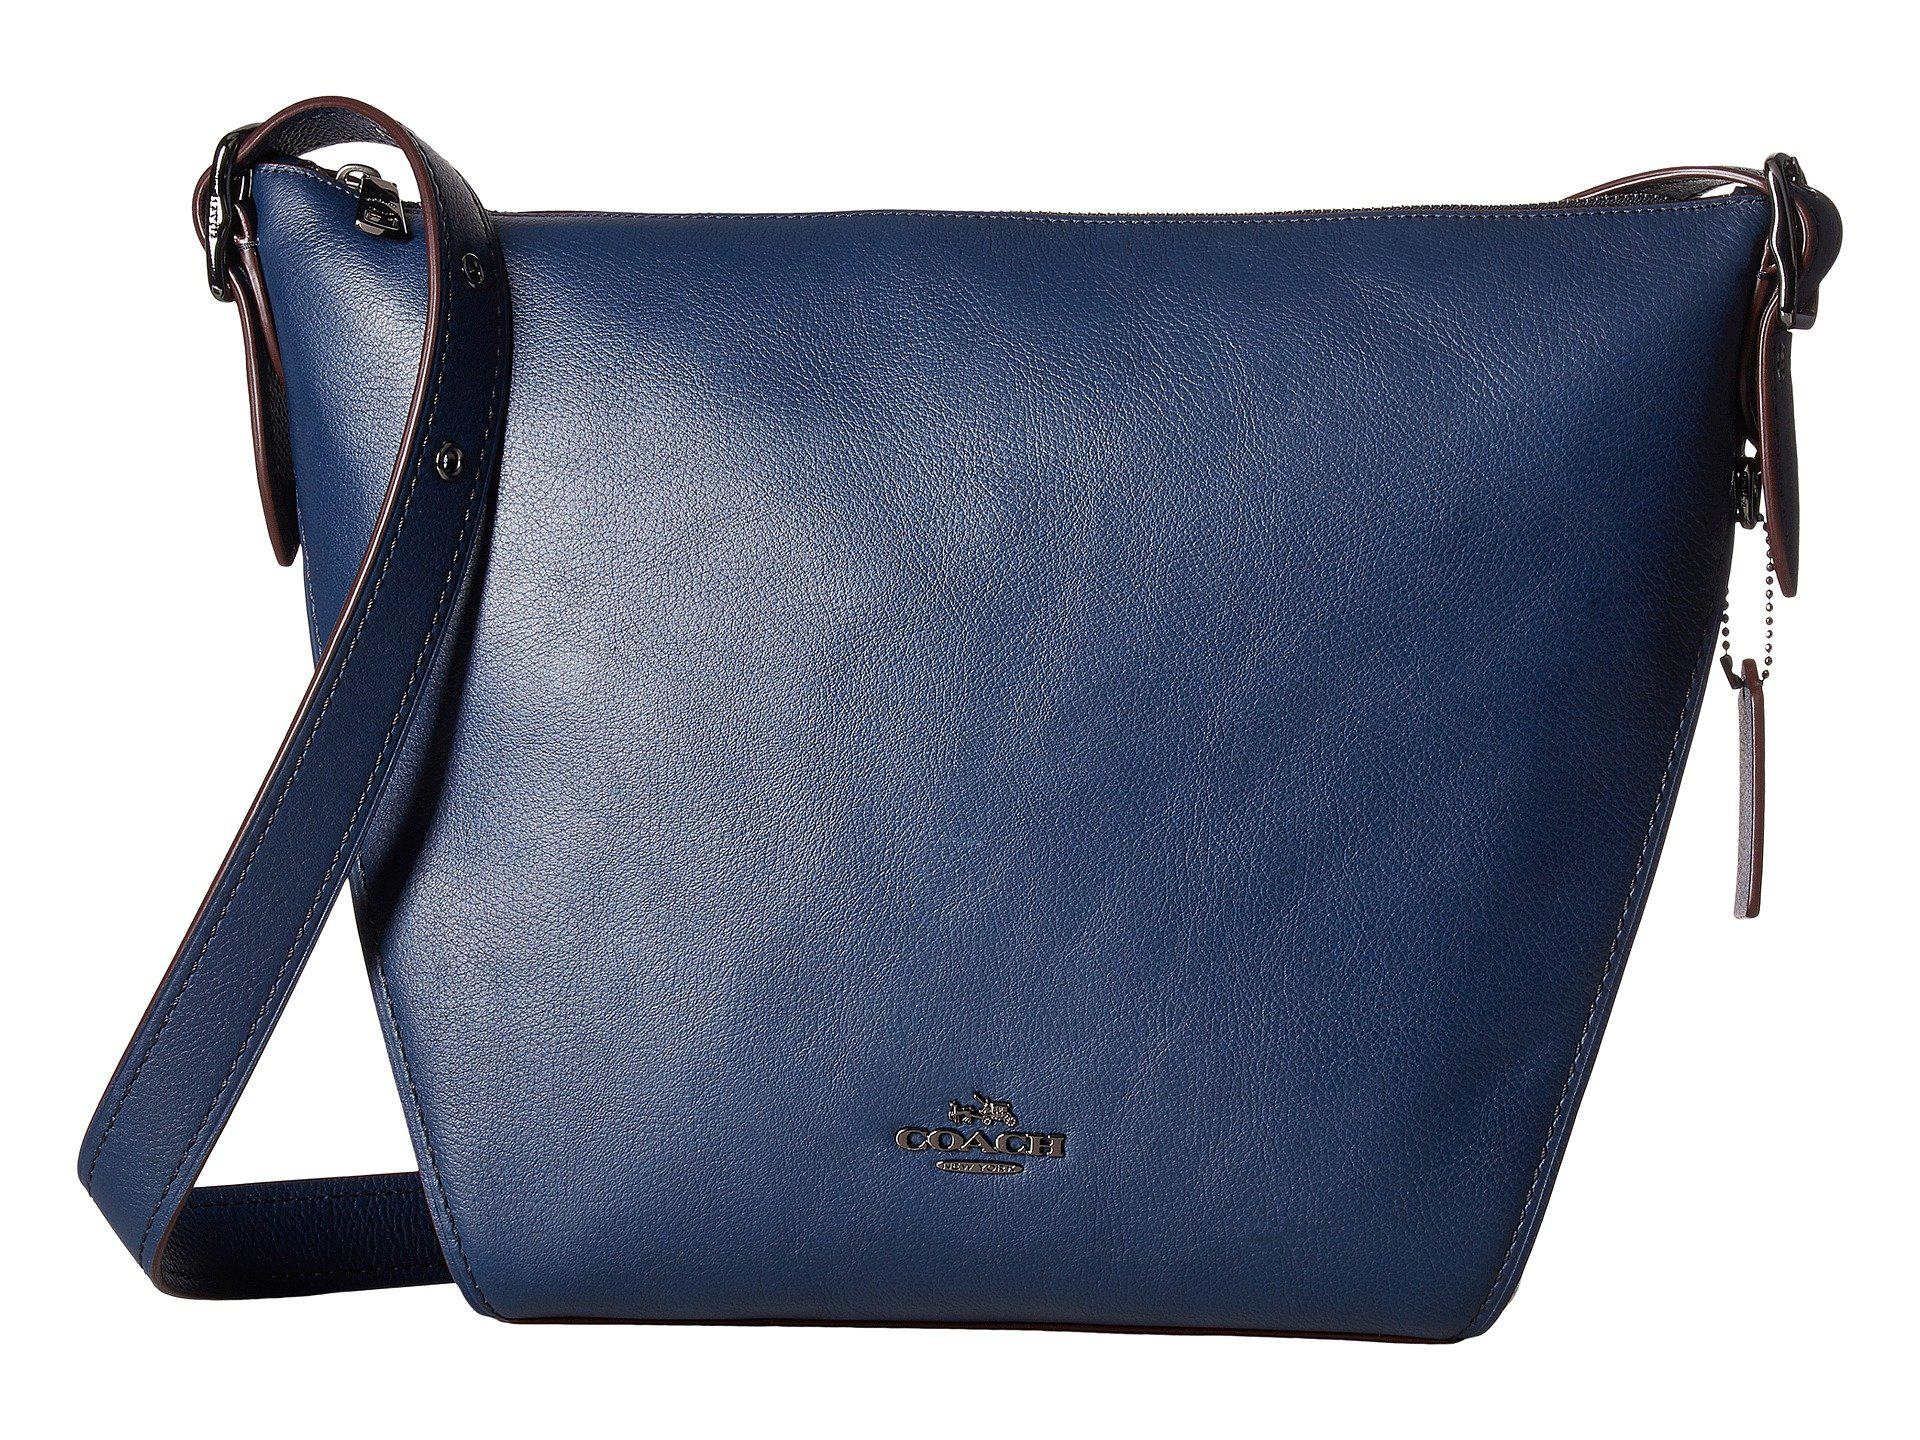 ddfdb2b02925 Lyst - COACH Dufflette In Natural Calf Leather (dk navy) Handbags in ...